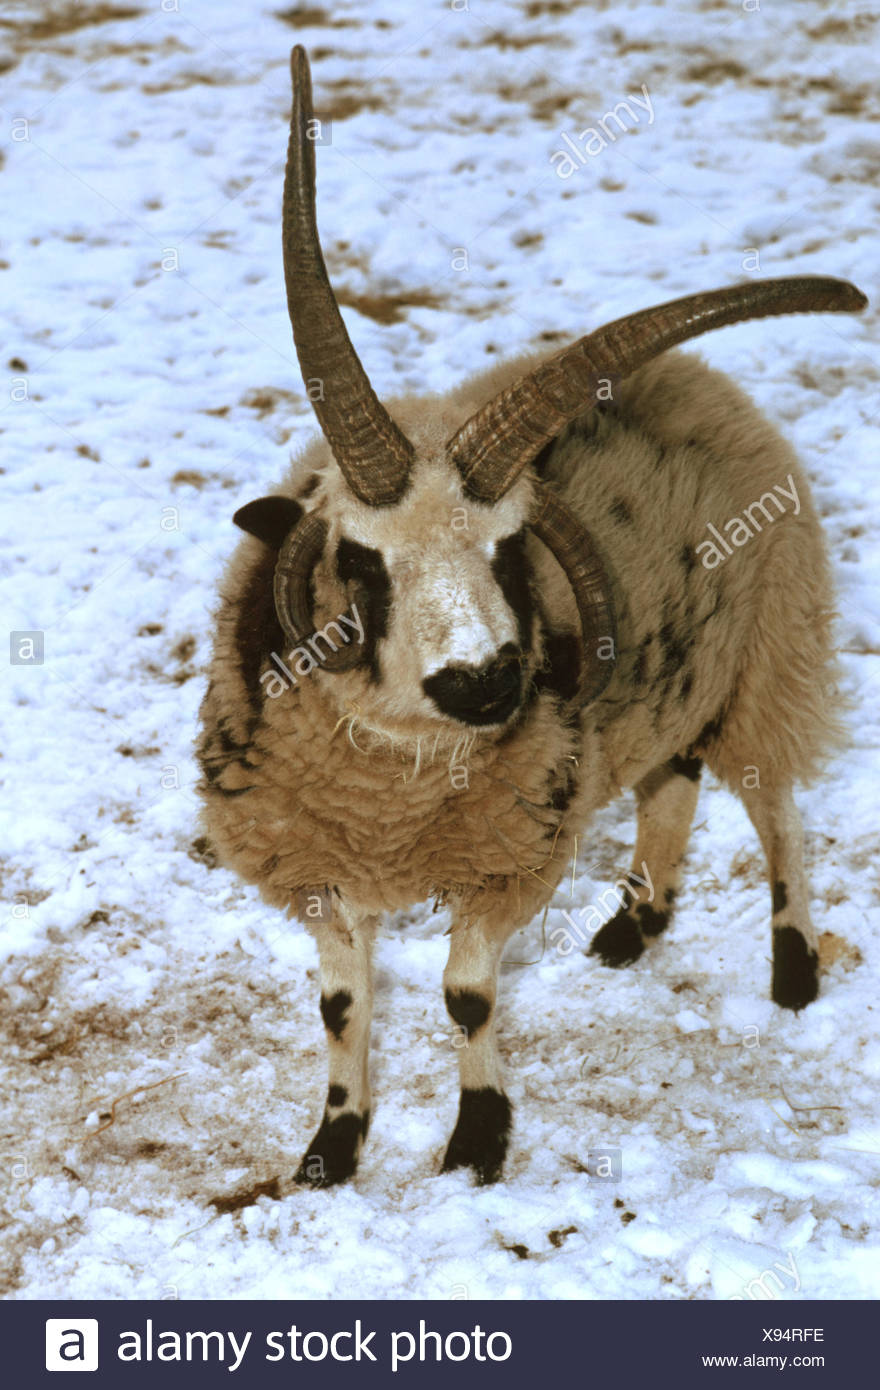 four-horn-sheep (Ovis ammon f. aries), adult animal in snow - Stock Image